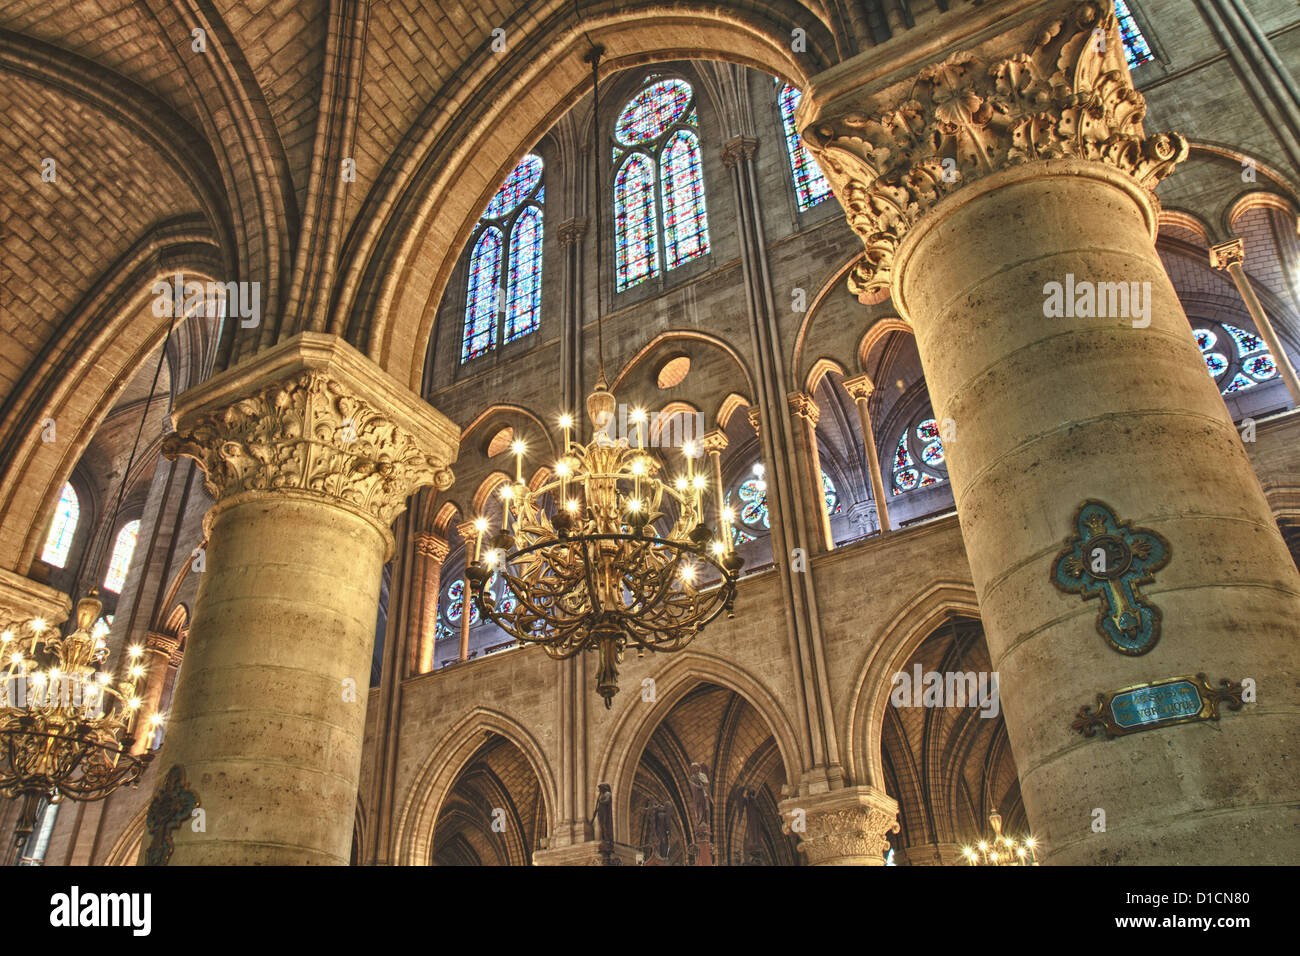 Interior view of Nore Dame in HDR, Paris, France - Stock Image